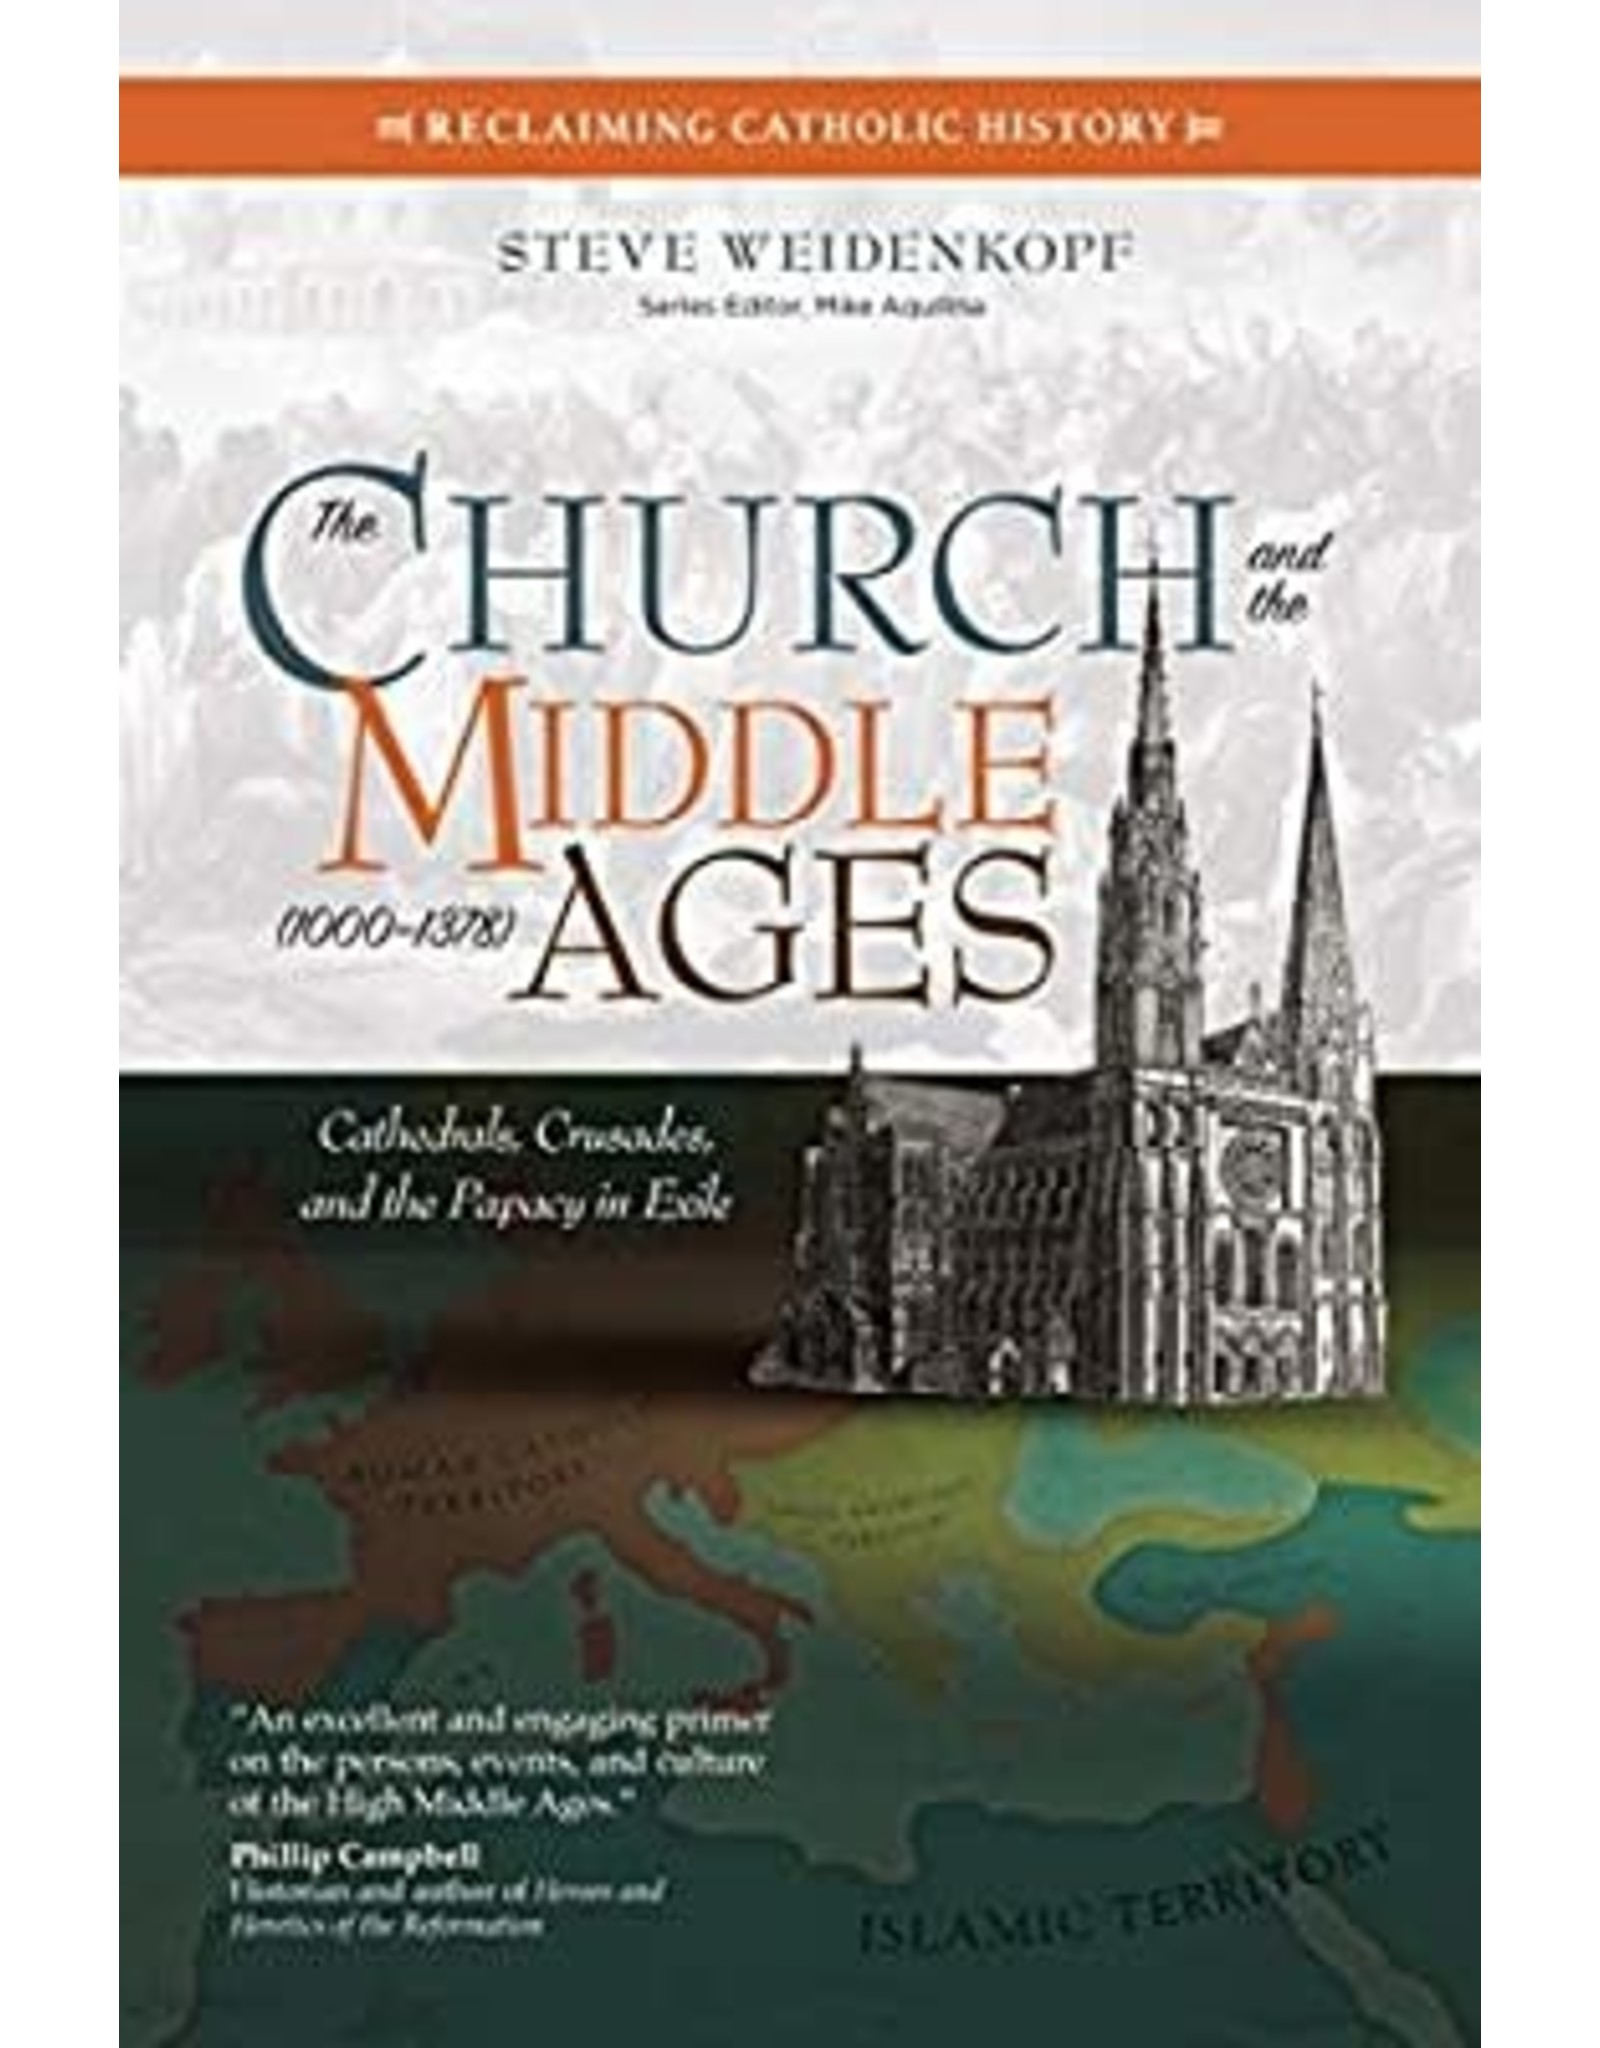 The Church and the Middle Ages (1000-1378): Cathedrals, Crusades, & the Papacy in Exile